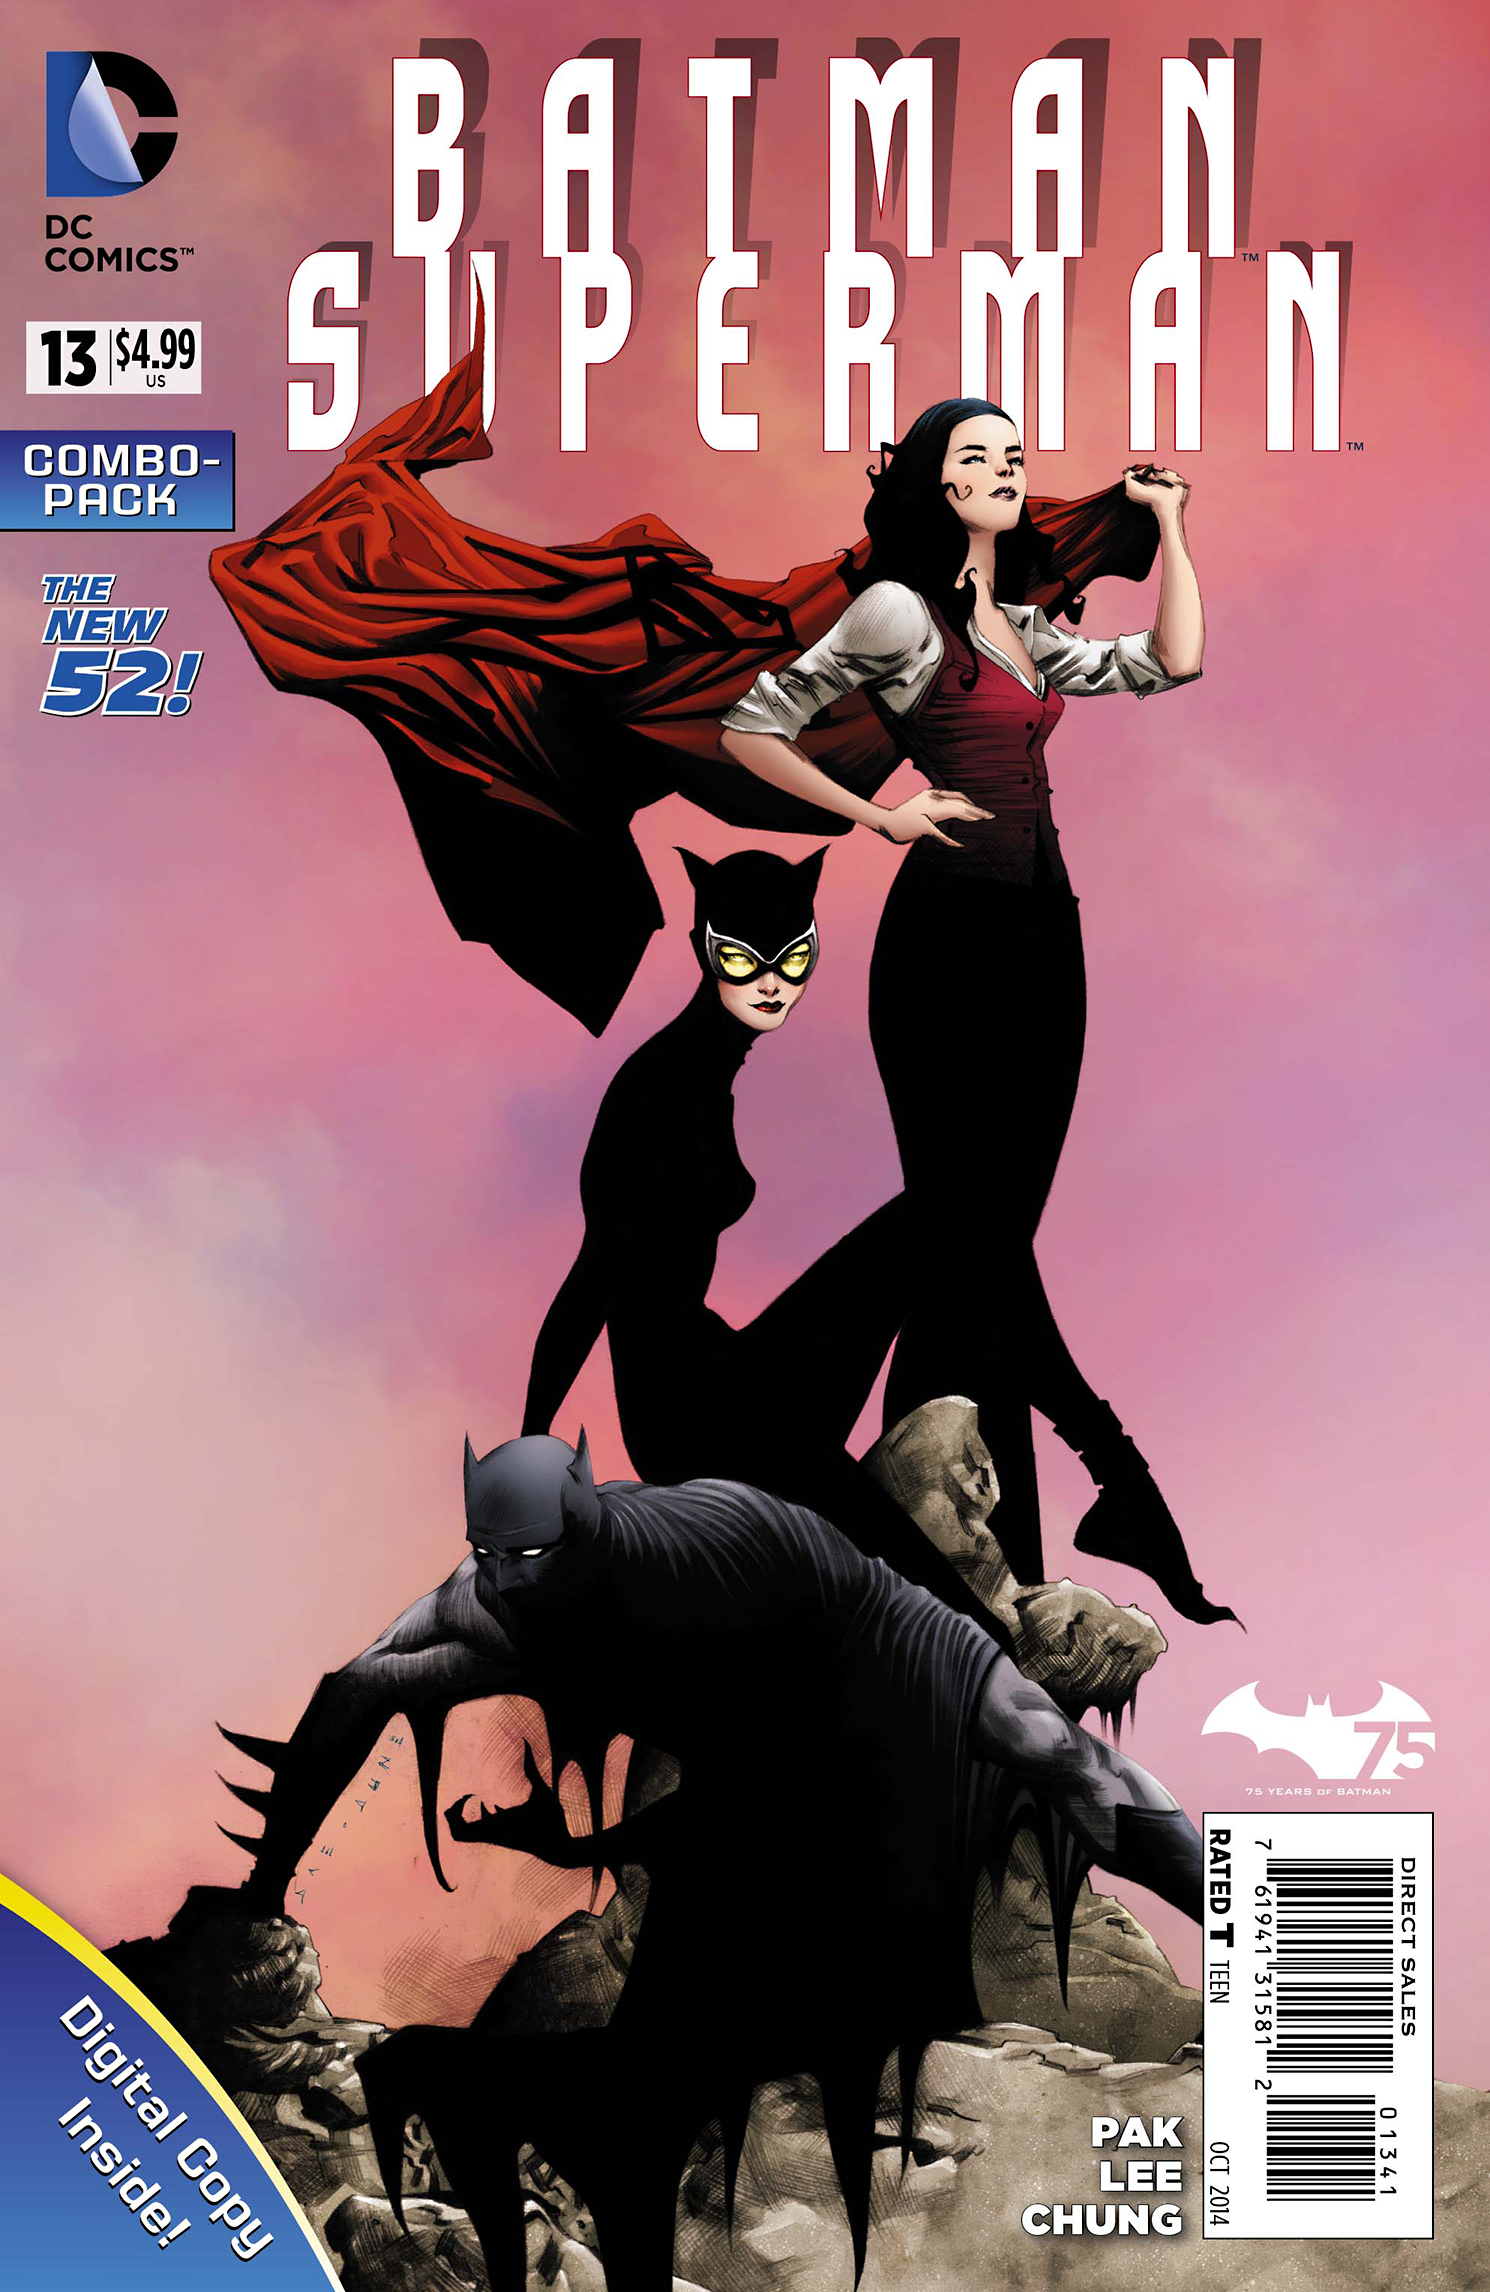 BATMAN SUPERMAN #13 COMBO PACK